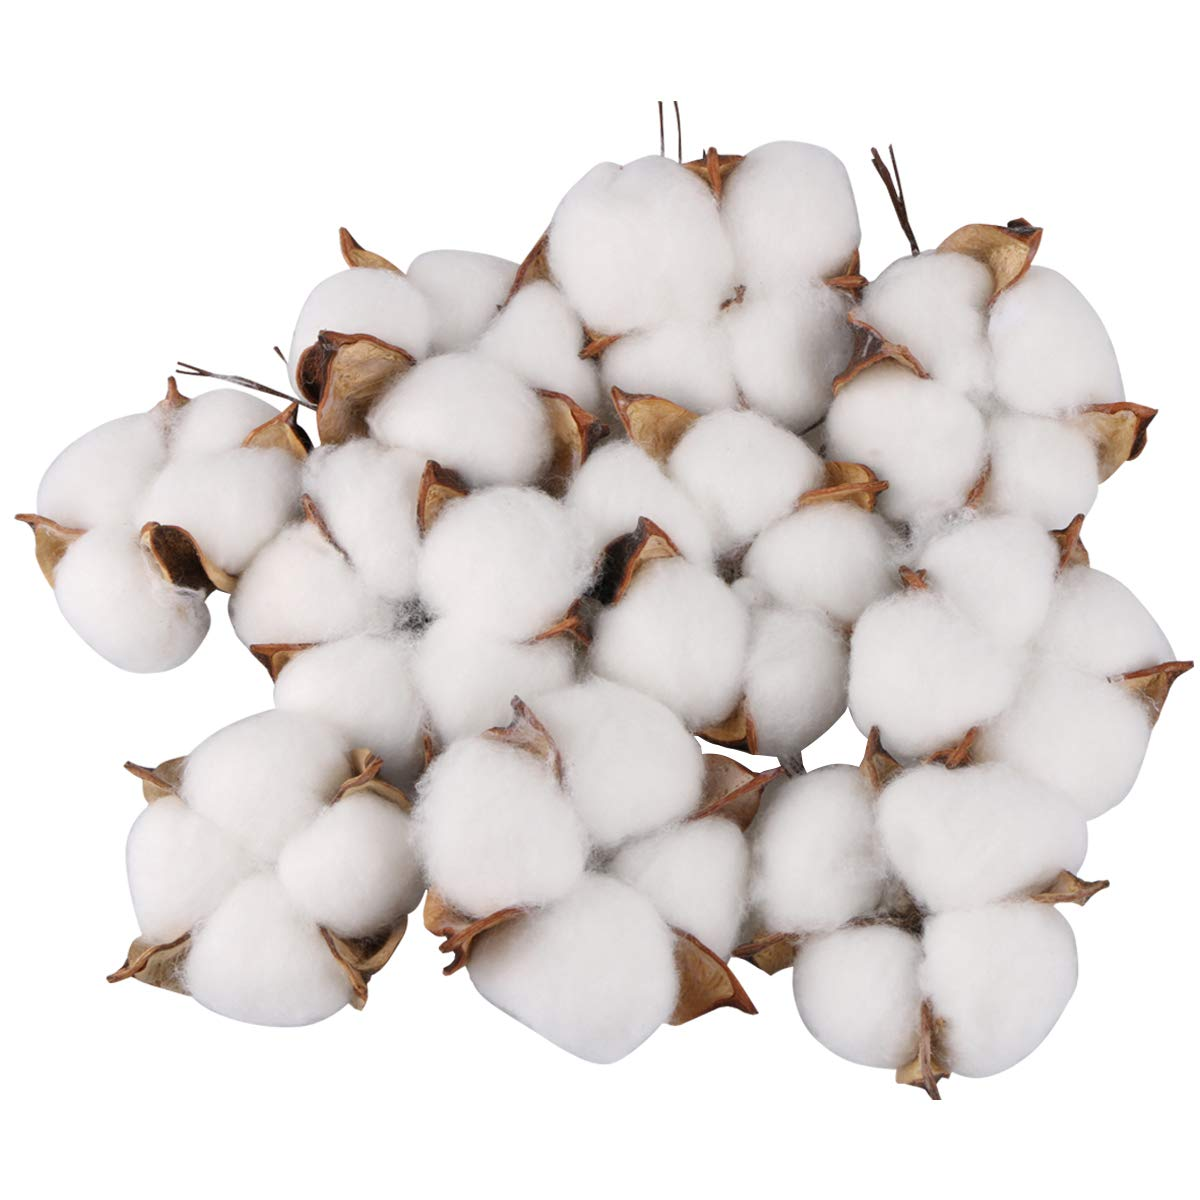 Yoodelife Natural Cotton Bolls Balls Artificial White Cotton Stems Floral Picks for Wreath Home Decor Craft, 10 Pcs